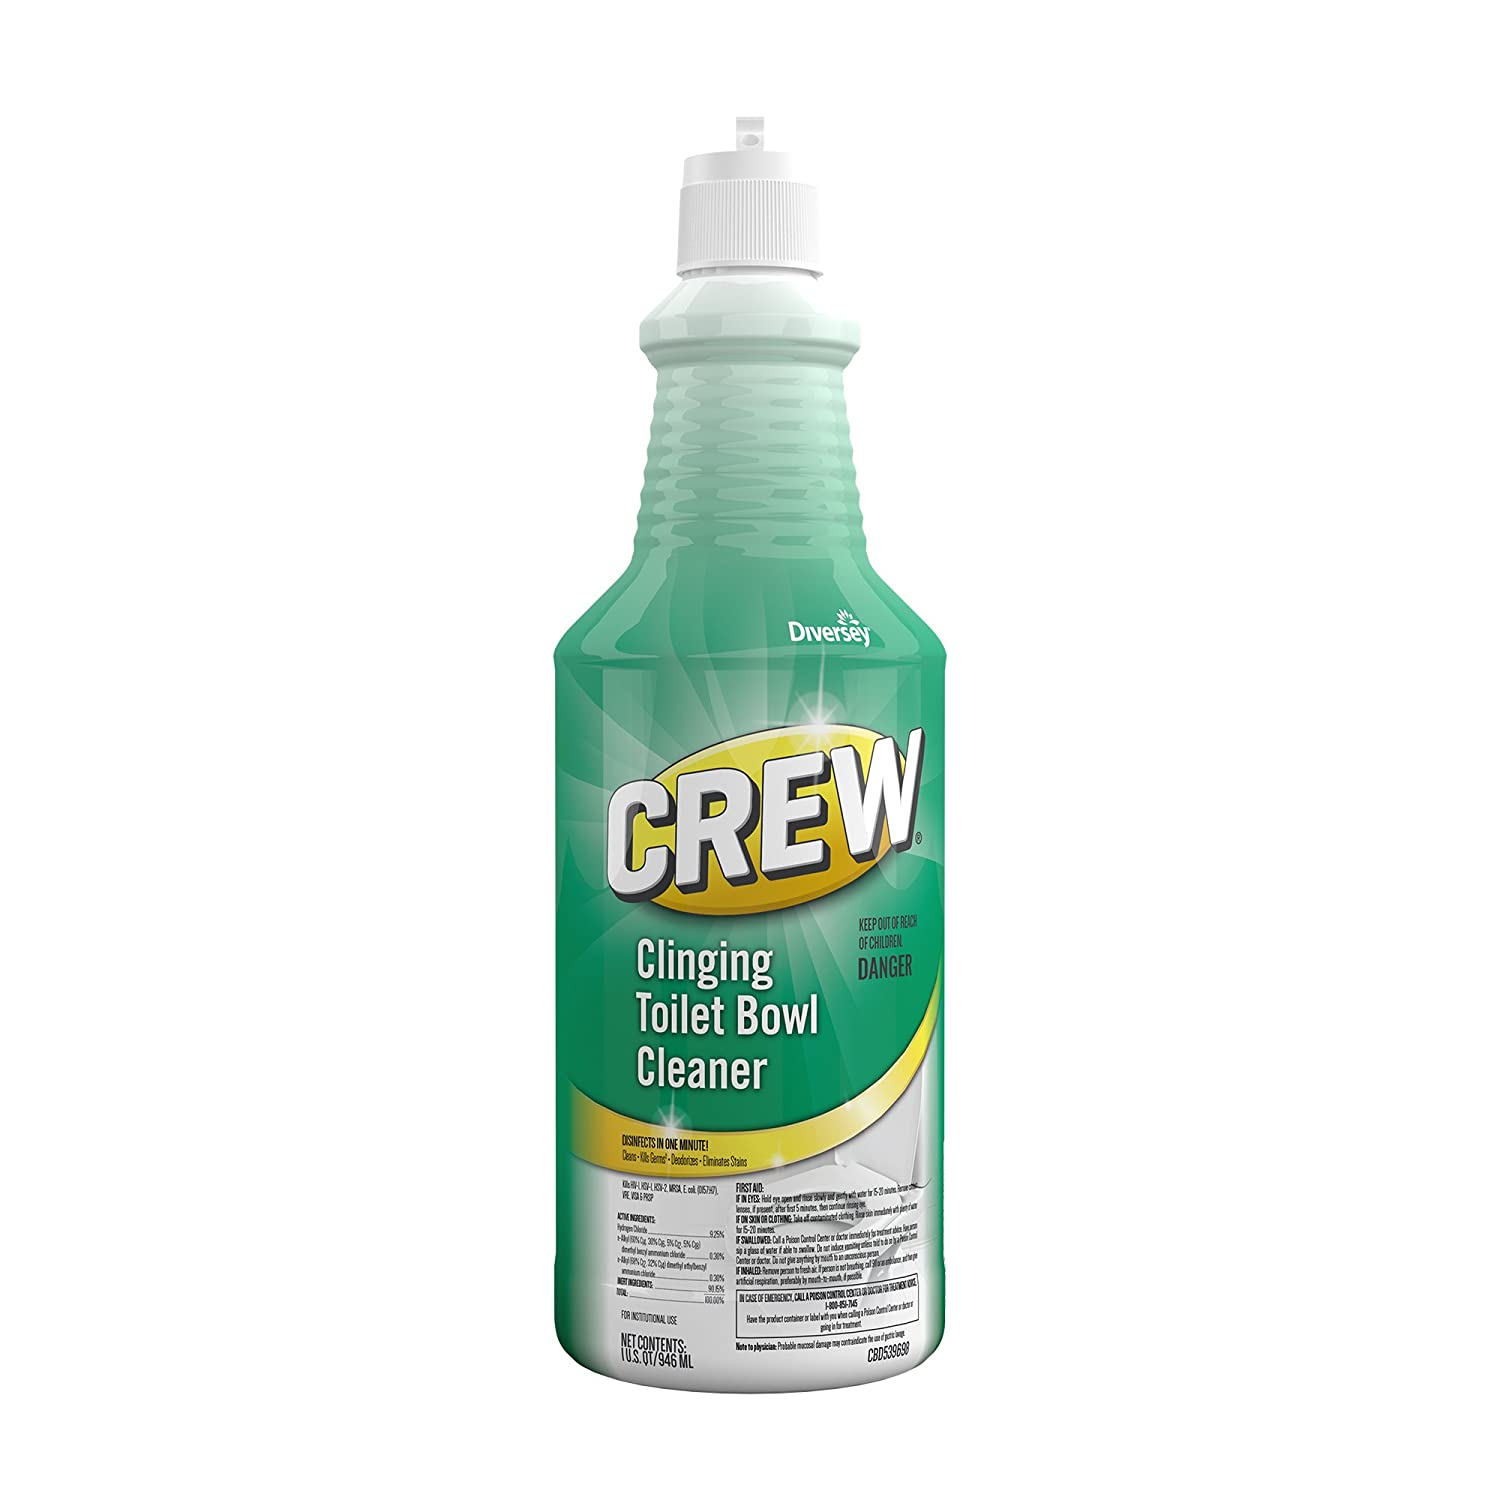 Amazon.com: Diversey Crew Clinging Toilet Bowl Cleaner Squeeze ...